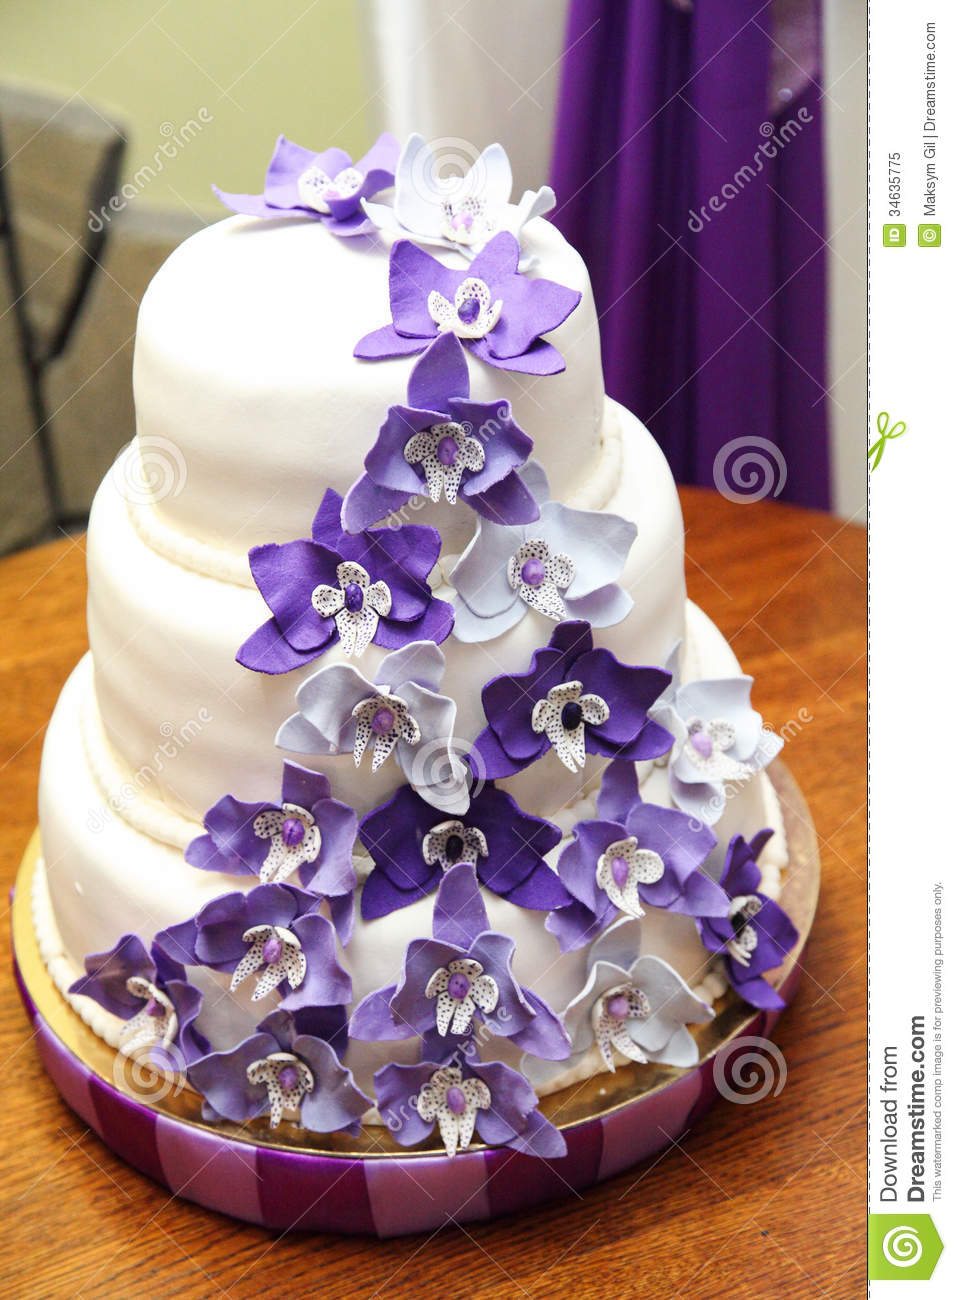 Cake Decorating Stock Images : Wedding Cake Royalty Free Stock Photo - Image: 34635775